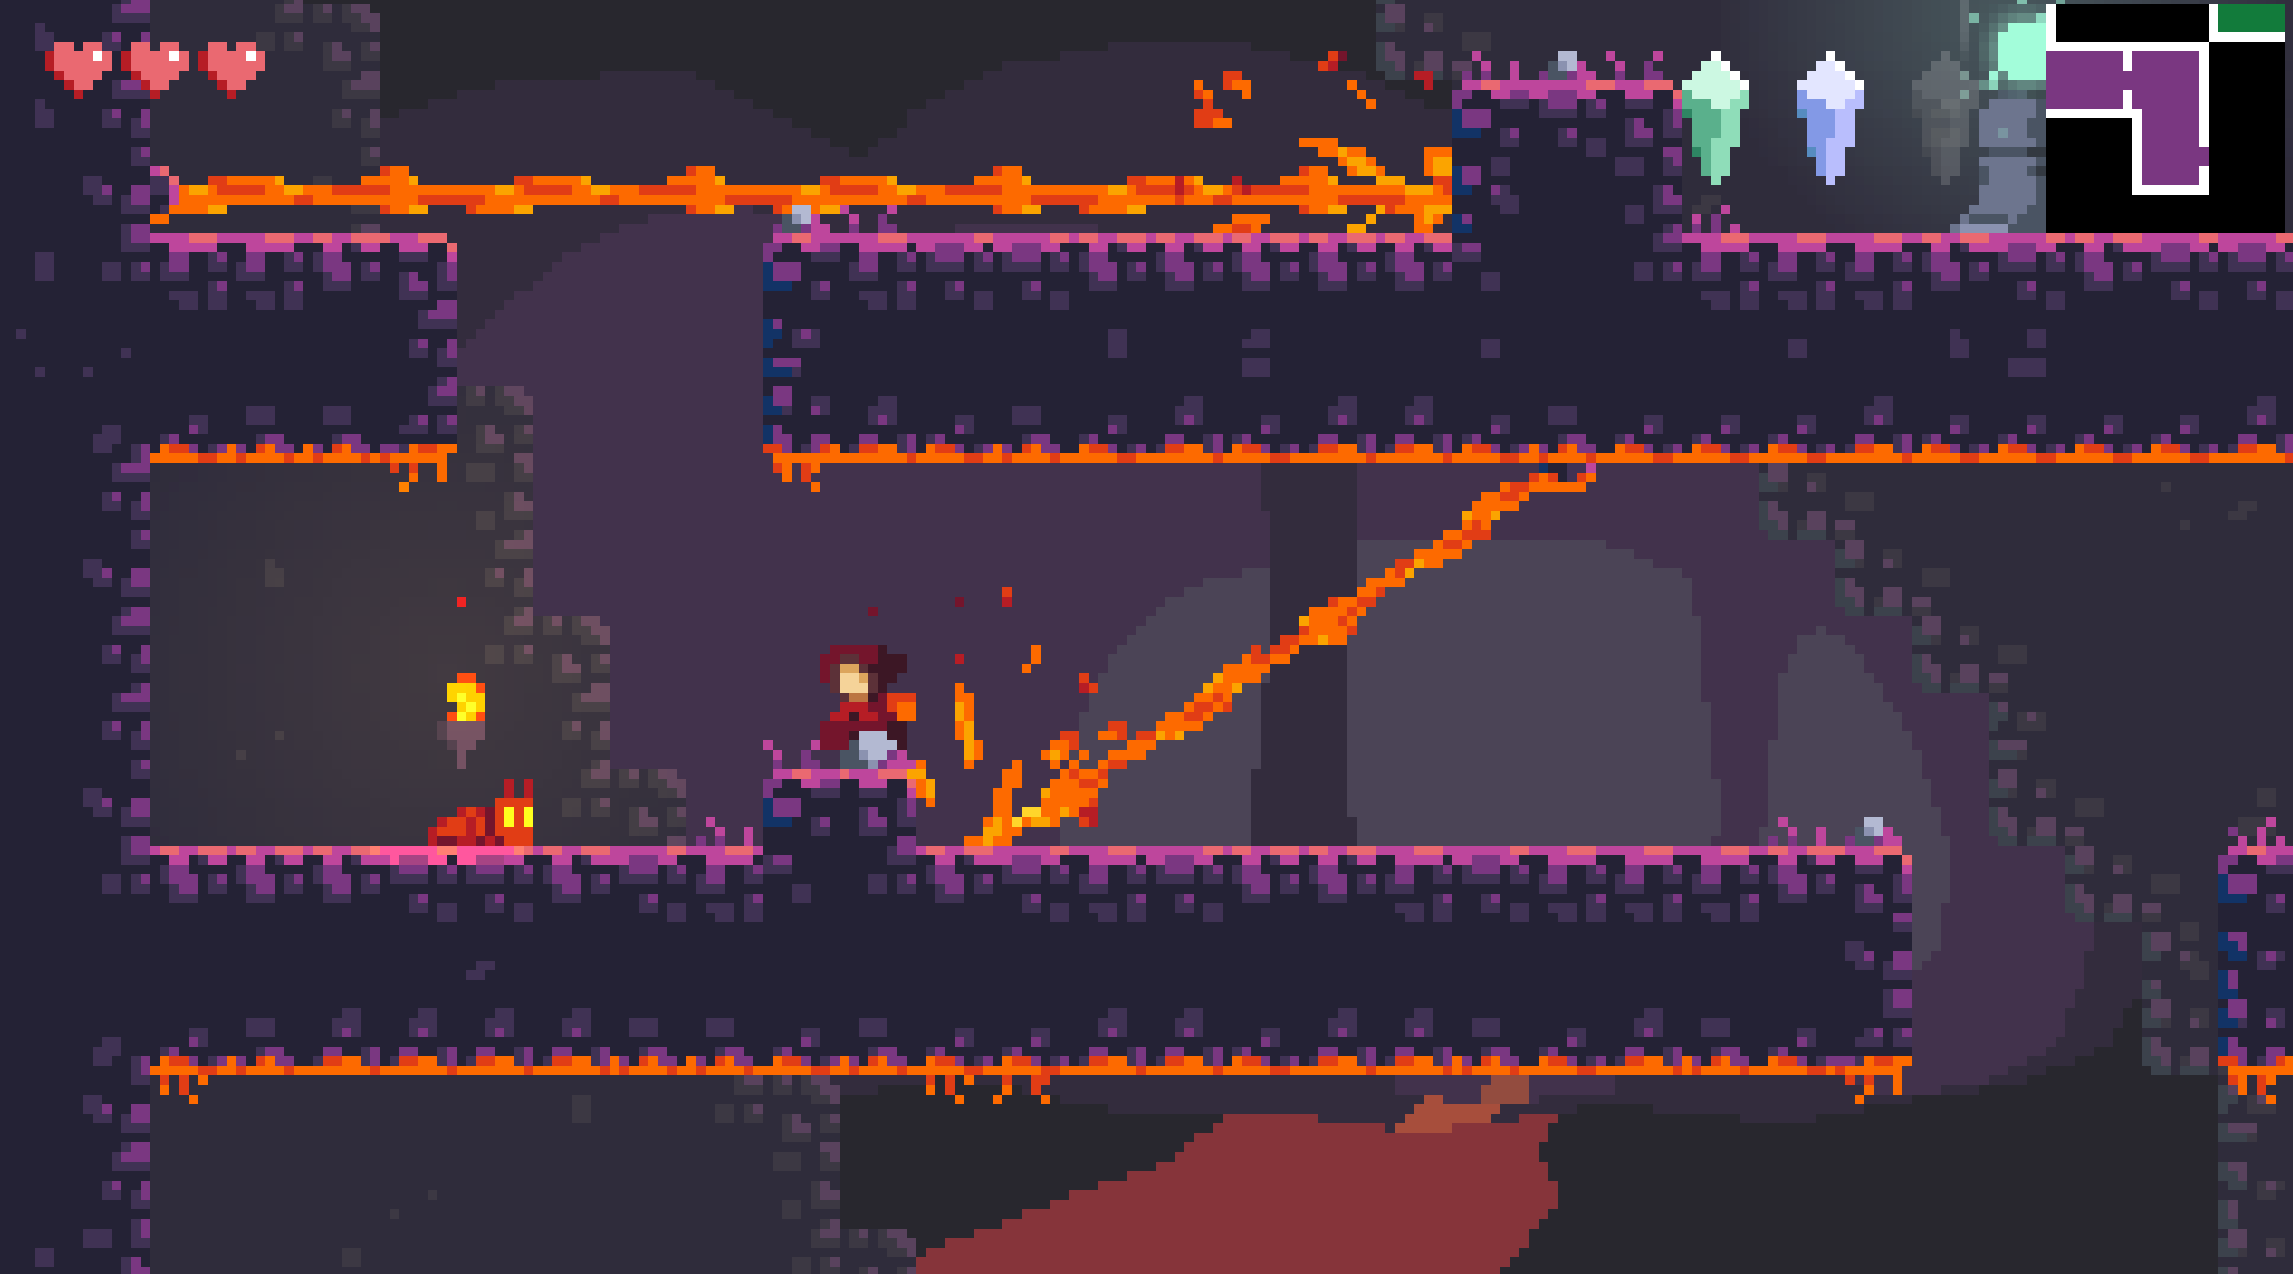 A section of the lava level in Sealed Bite, which encourages slow traversal.